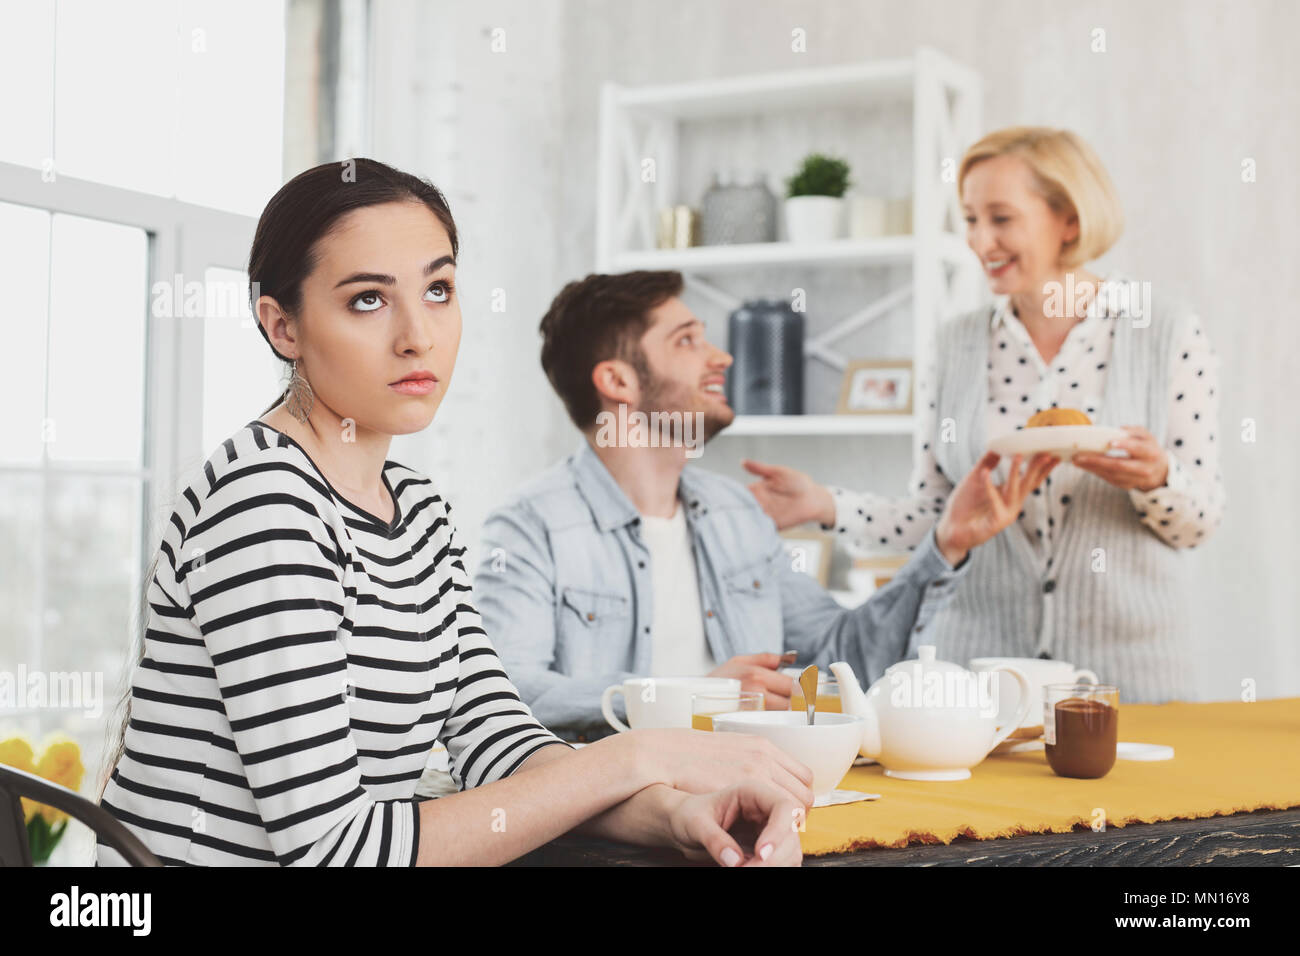 Cheerless young woman rolling her eyes - Stock Image